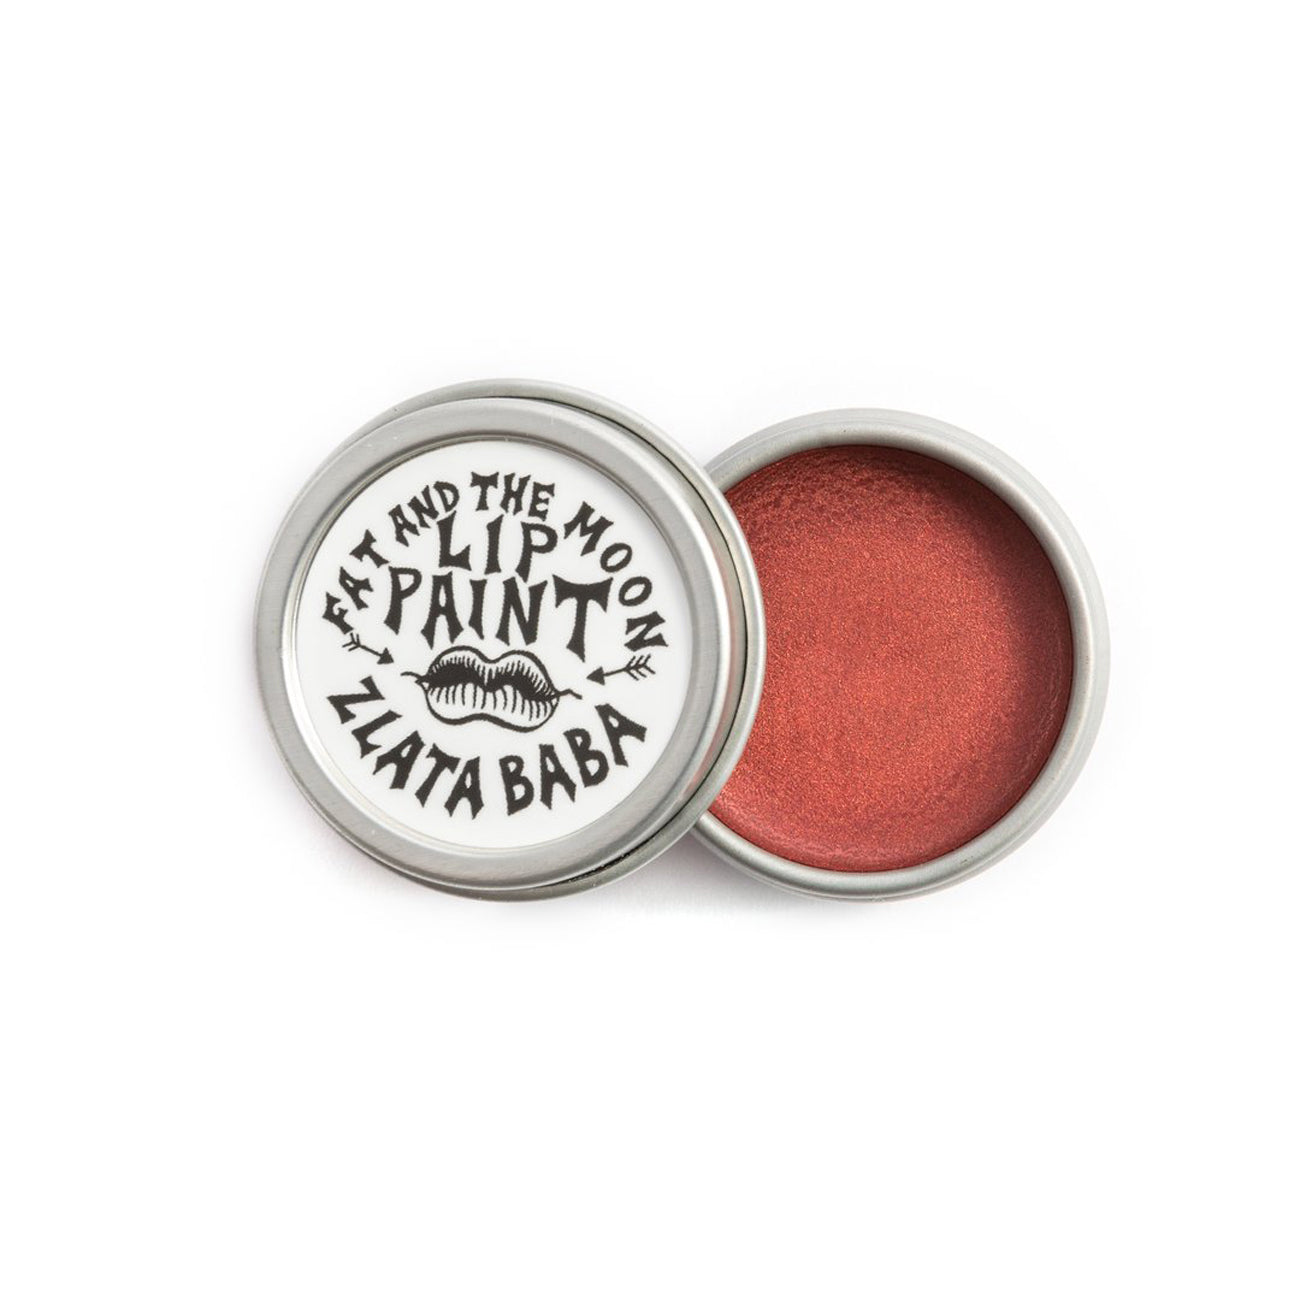 Fat and the Moon Zlata Baba Lip Paint